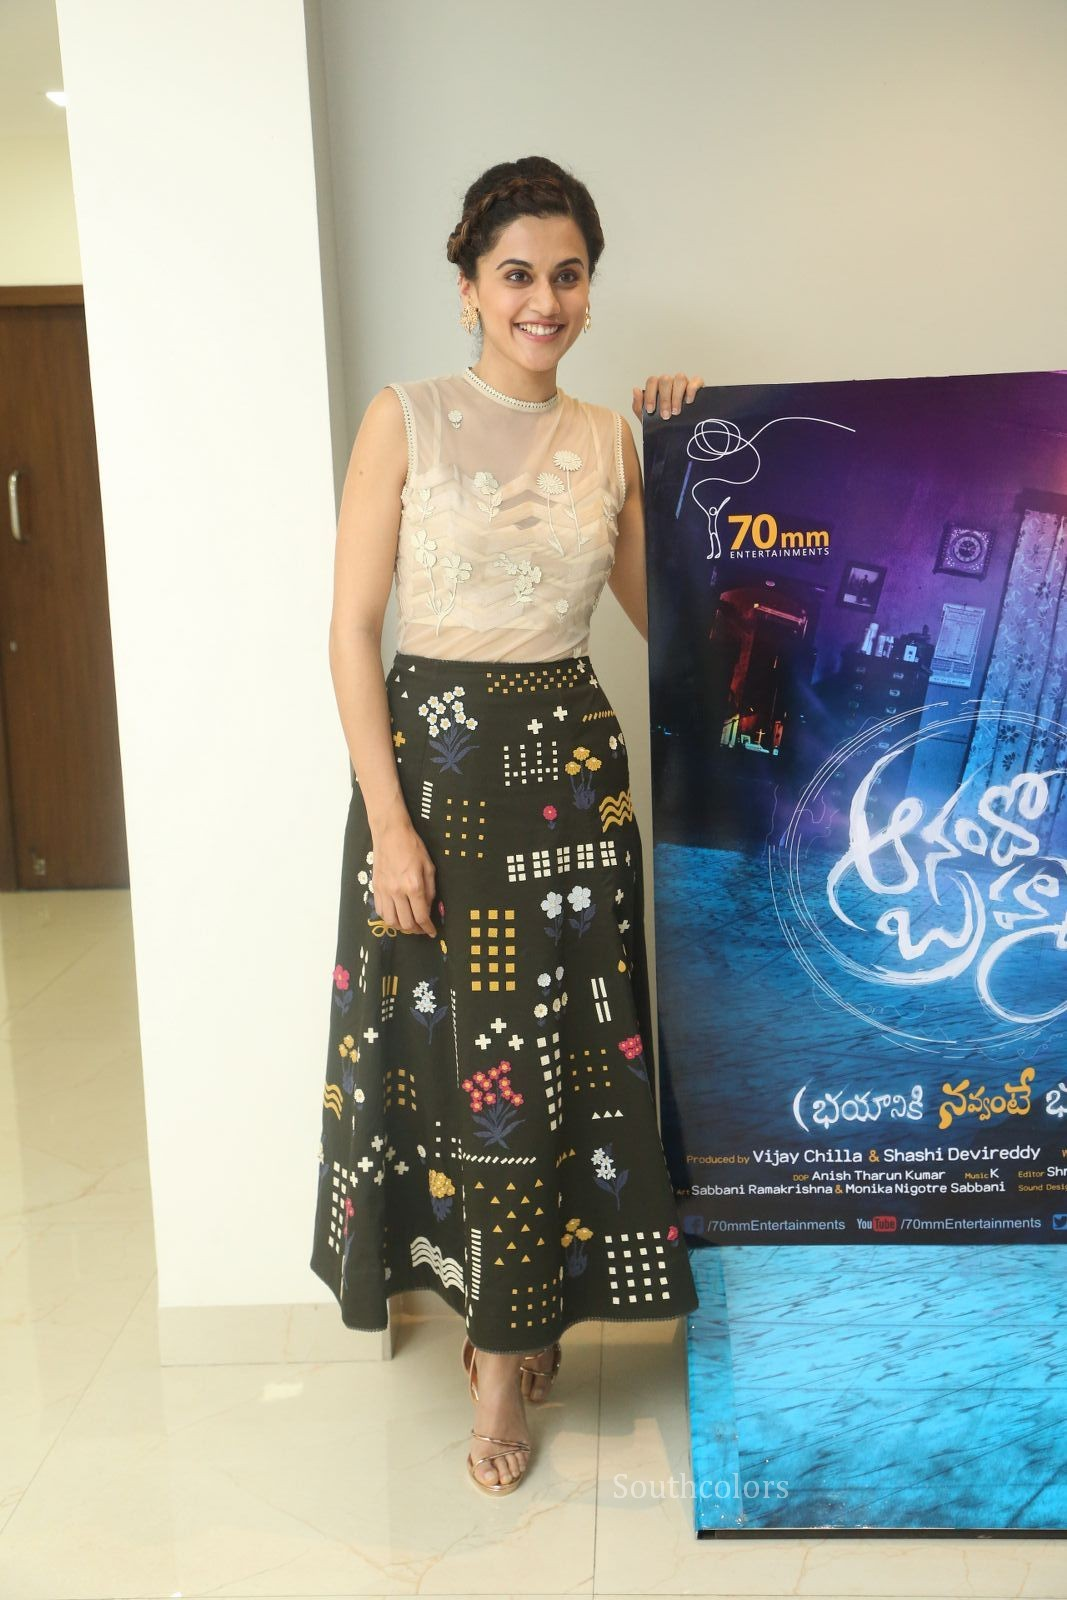 taapsee pannu stills at anando brahma trailer launch southcolors%2B%25289%2529